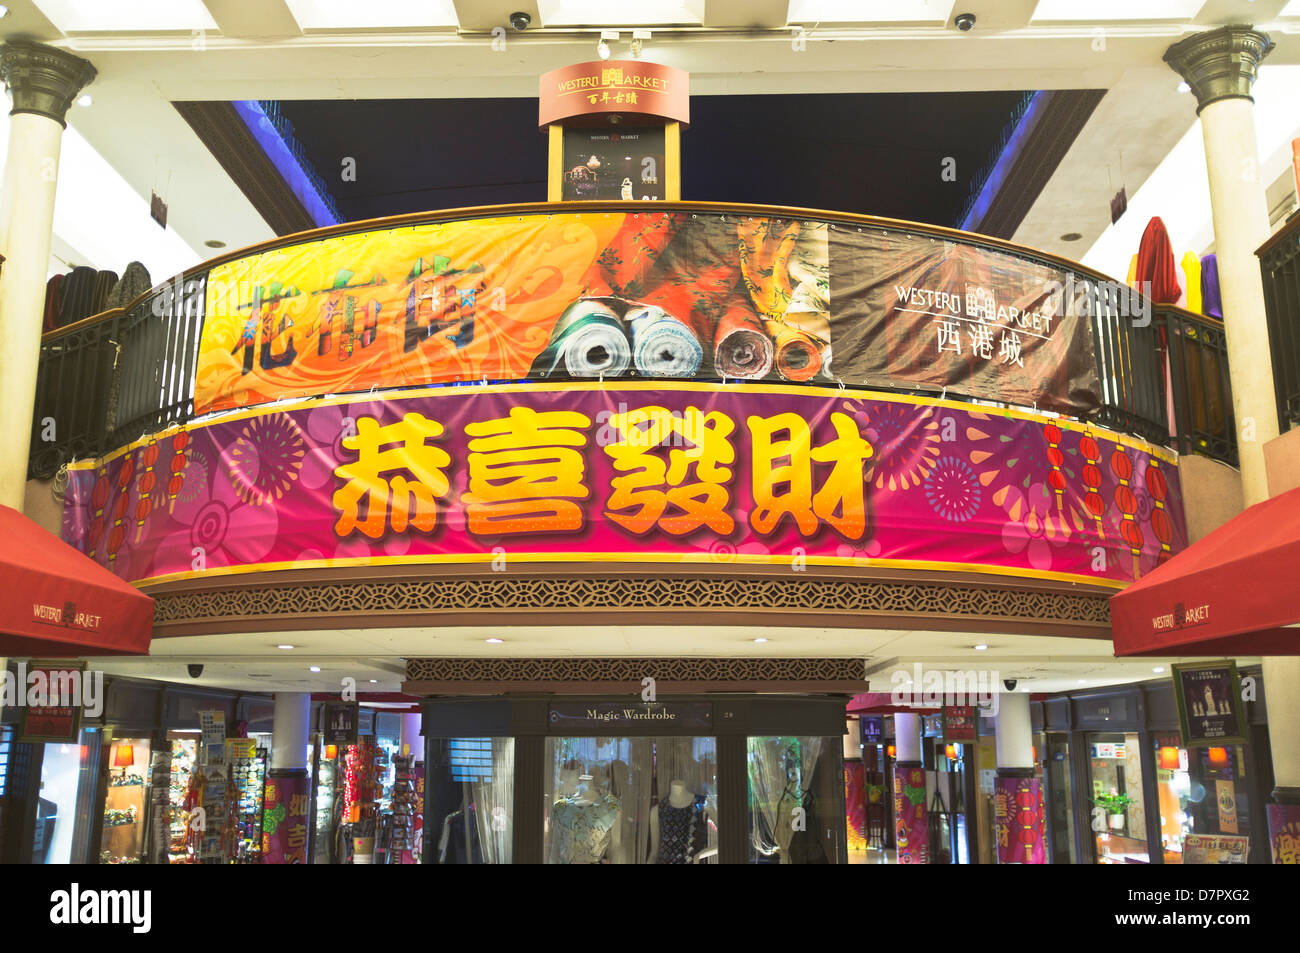 dh western market sheung wan hong kong chinese new year banner display shopping mall interior